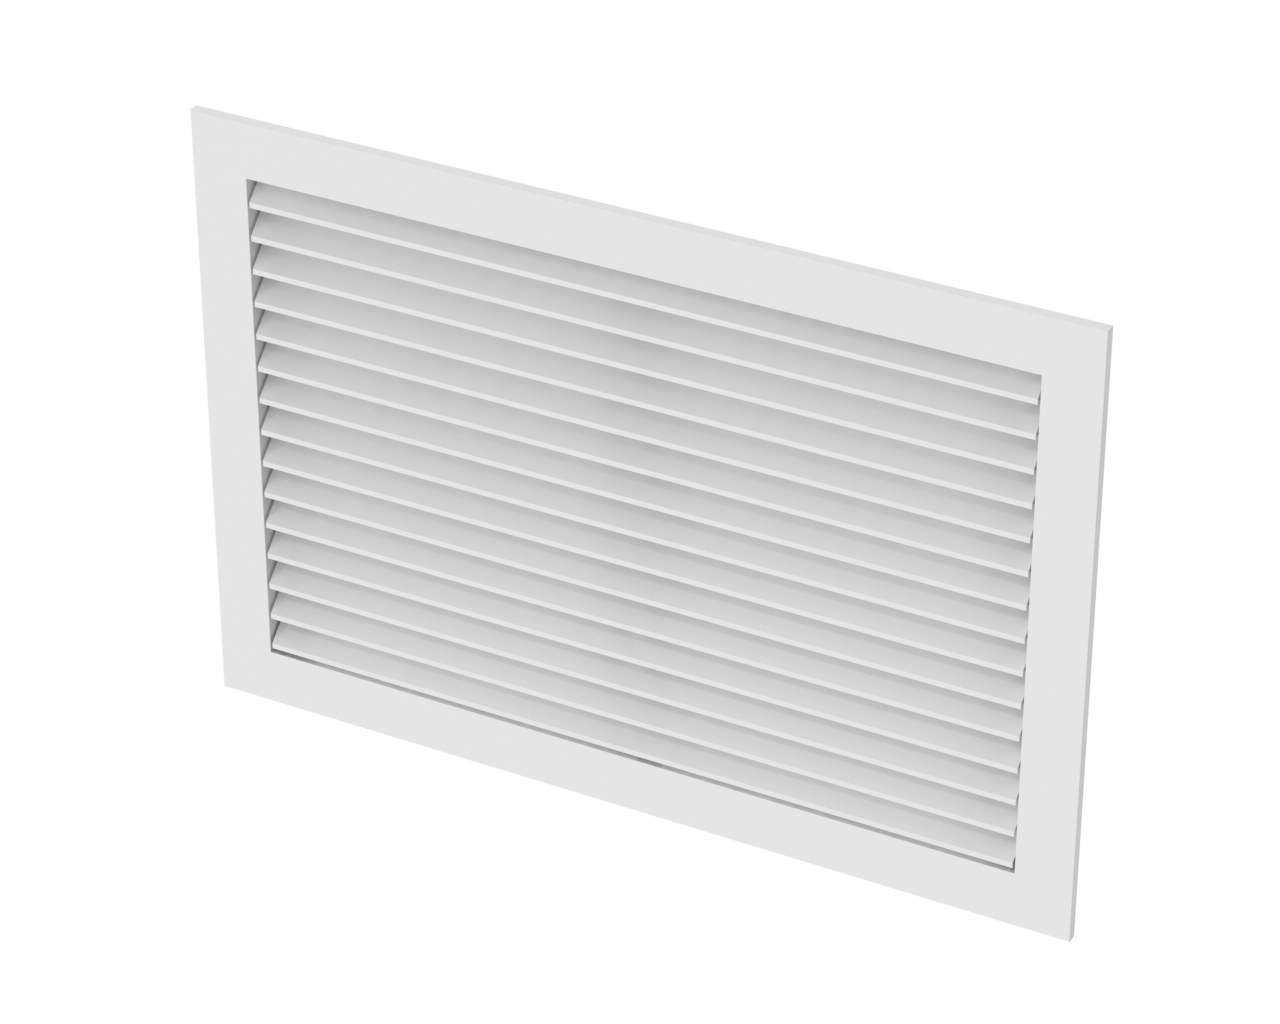 Rhd90 Aluminum Return Air Grille 90 Degree Fixed Blade